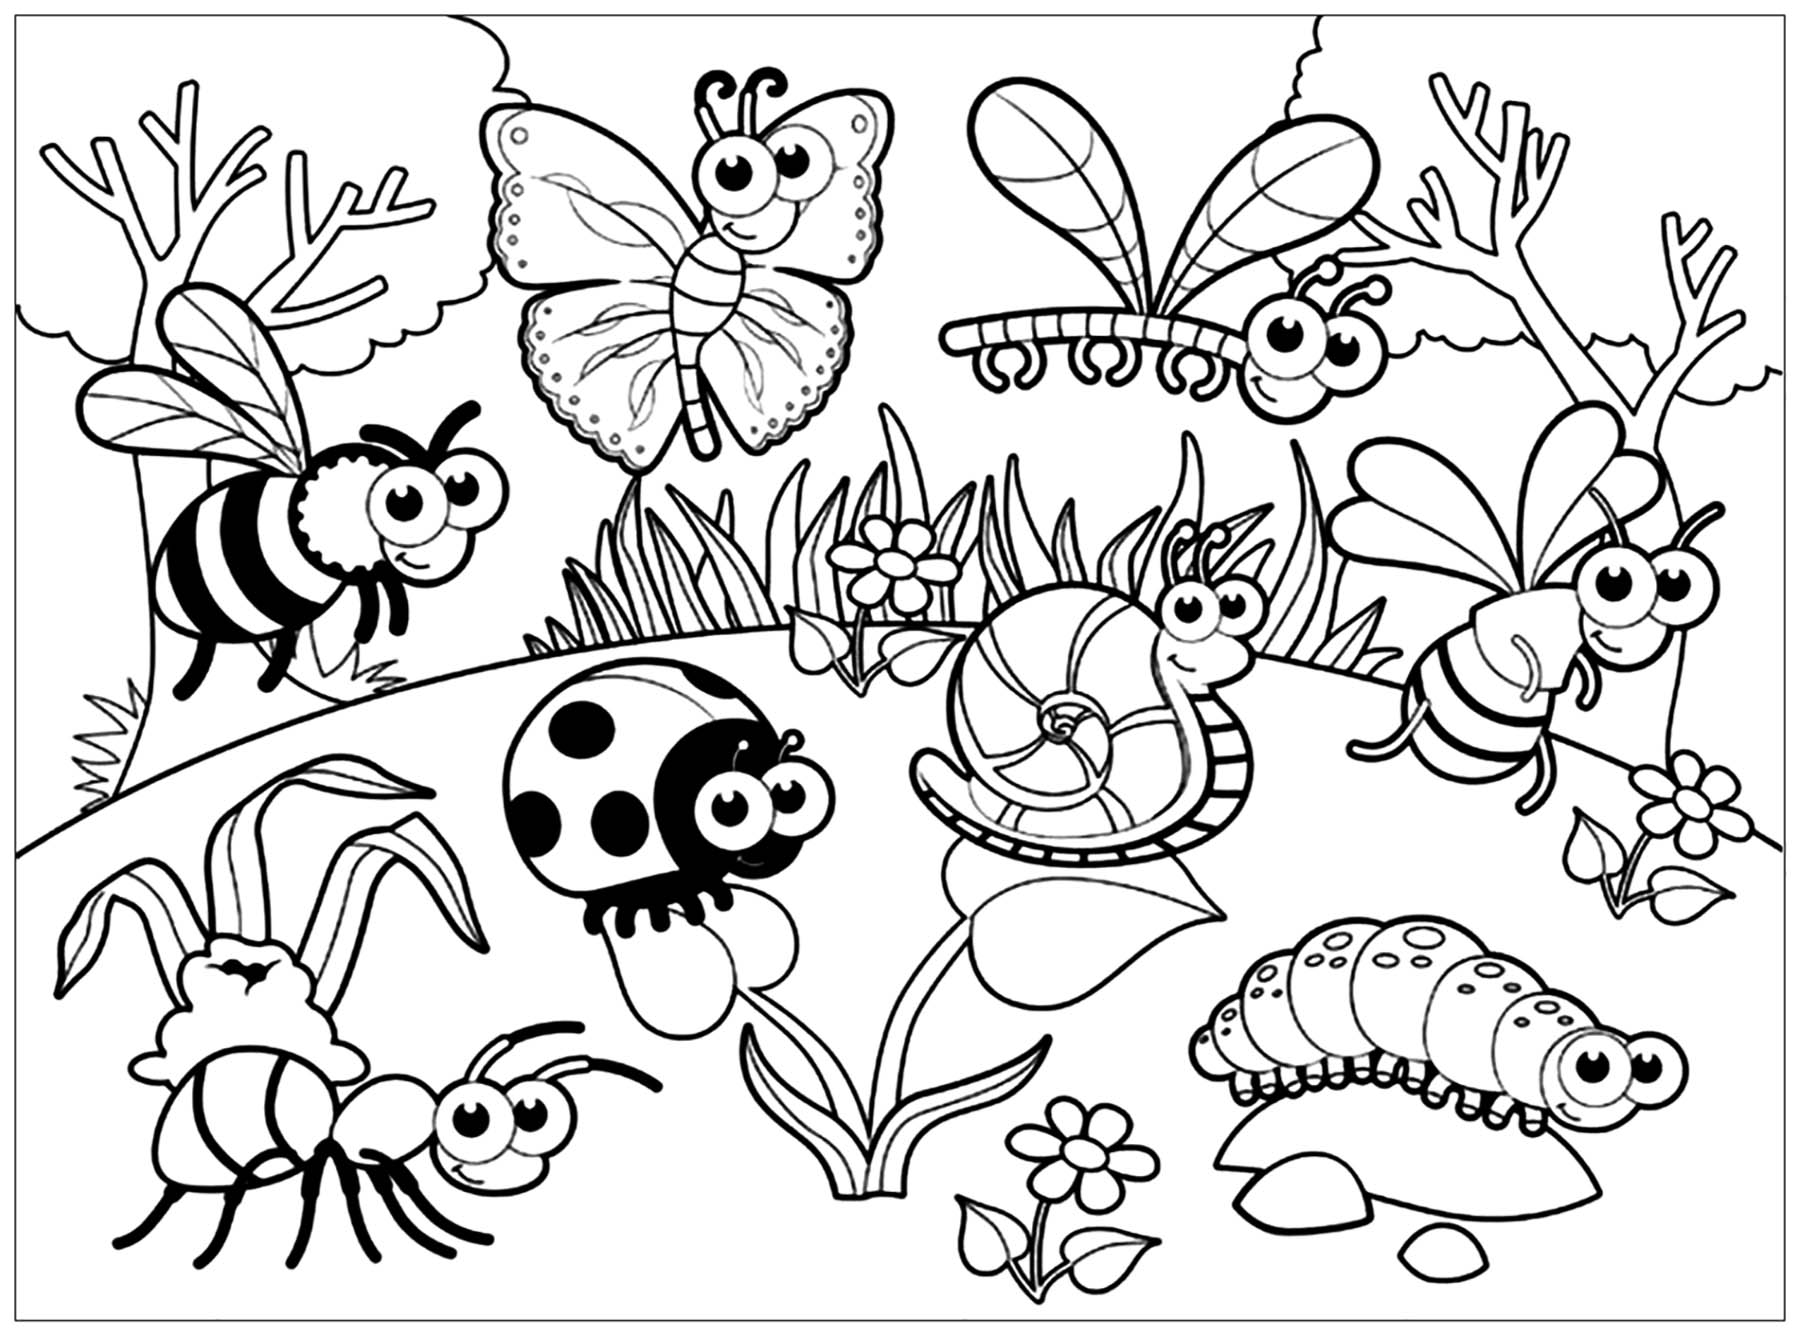 coloring pictures of insects insect coloring pages best coloring pages for kids of insects coloring pictures